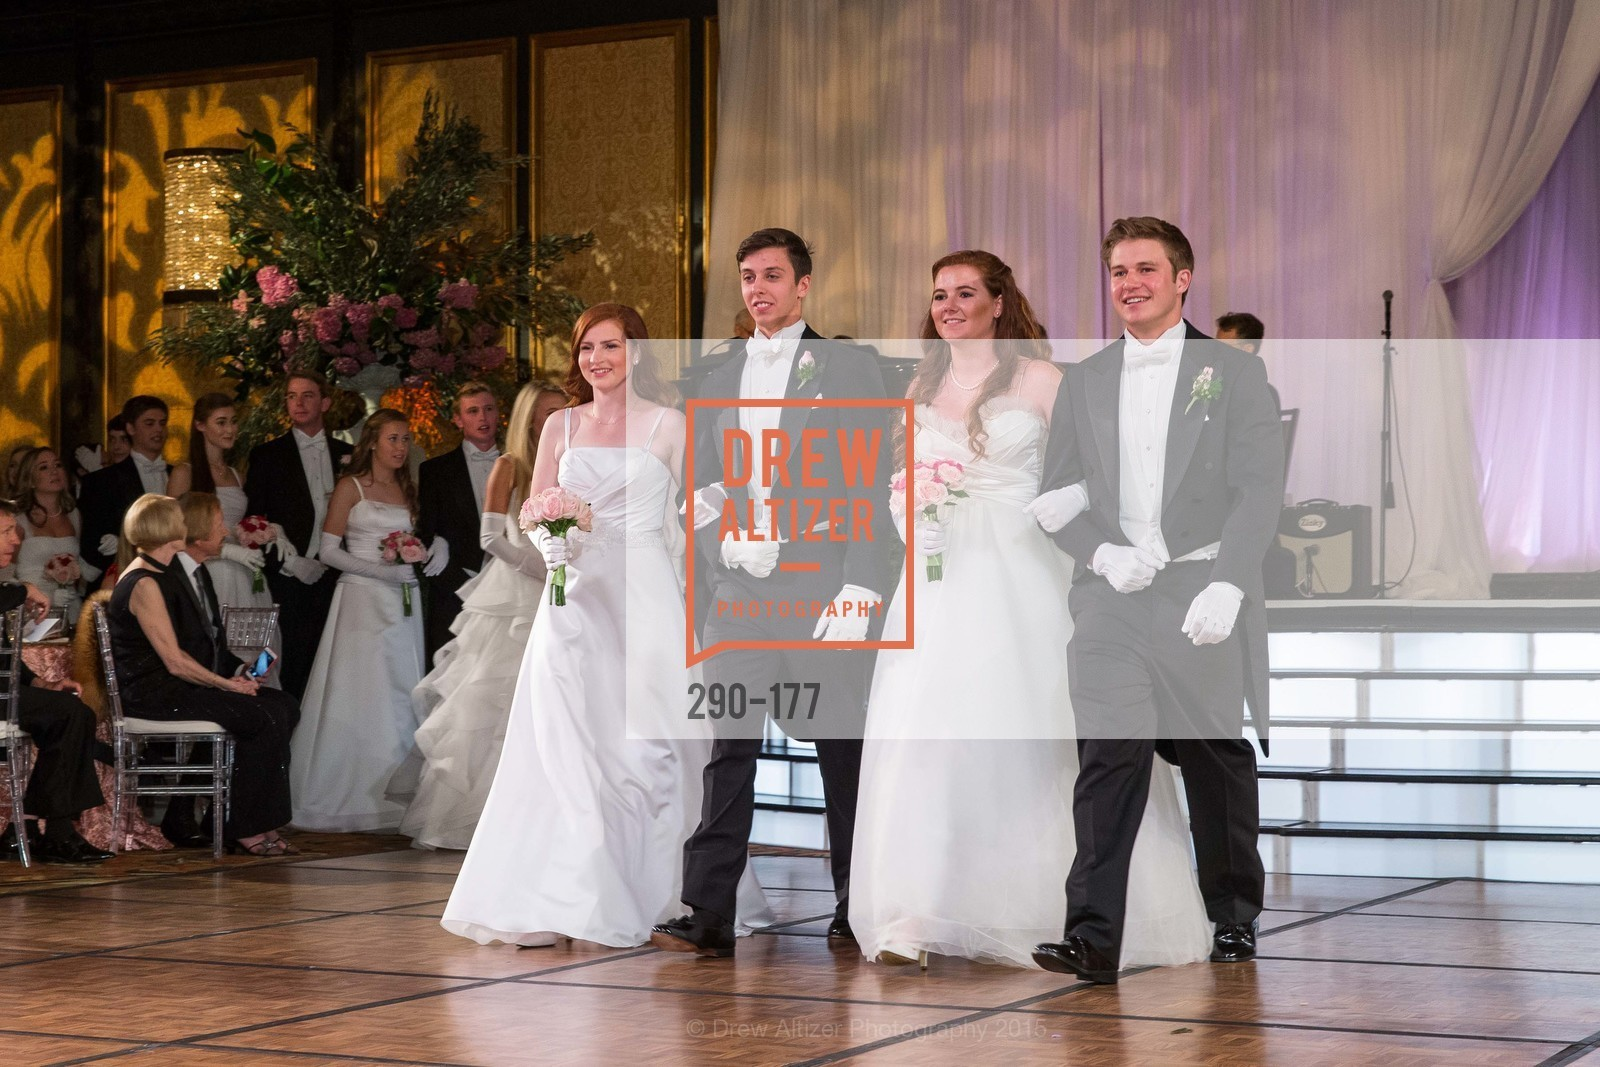 Curry Fisher, William Behnke Jr., Kendall Finnegan, Angelo Matteo Sangiacomo, The 2015 San Francisco Debutante Ball, The Westin St. Francis San Francisco Union Square. 335 Powell St, June 20th, 2015,Drew Altizer, Drew Altizer Photography, full-service agency, private events, San Francisco photographer, photographer california